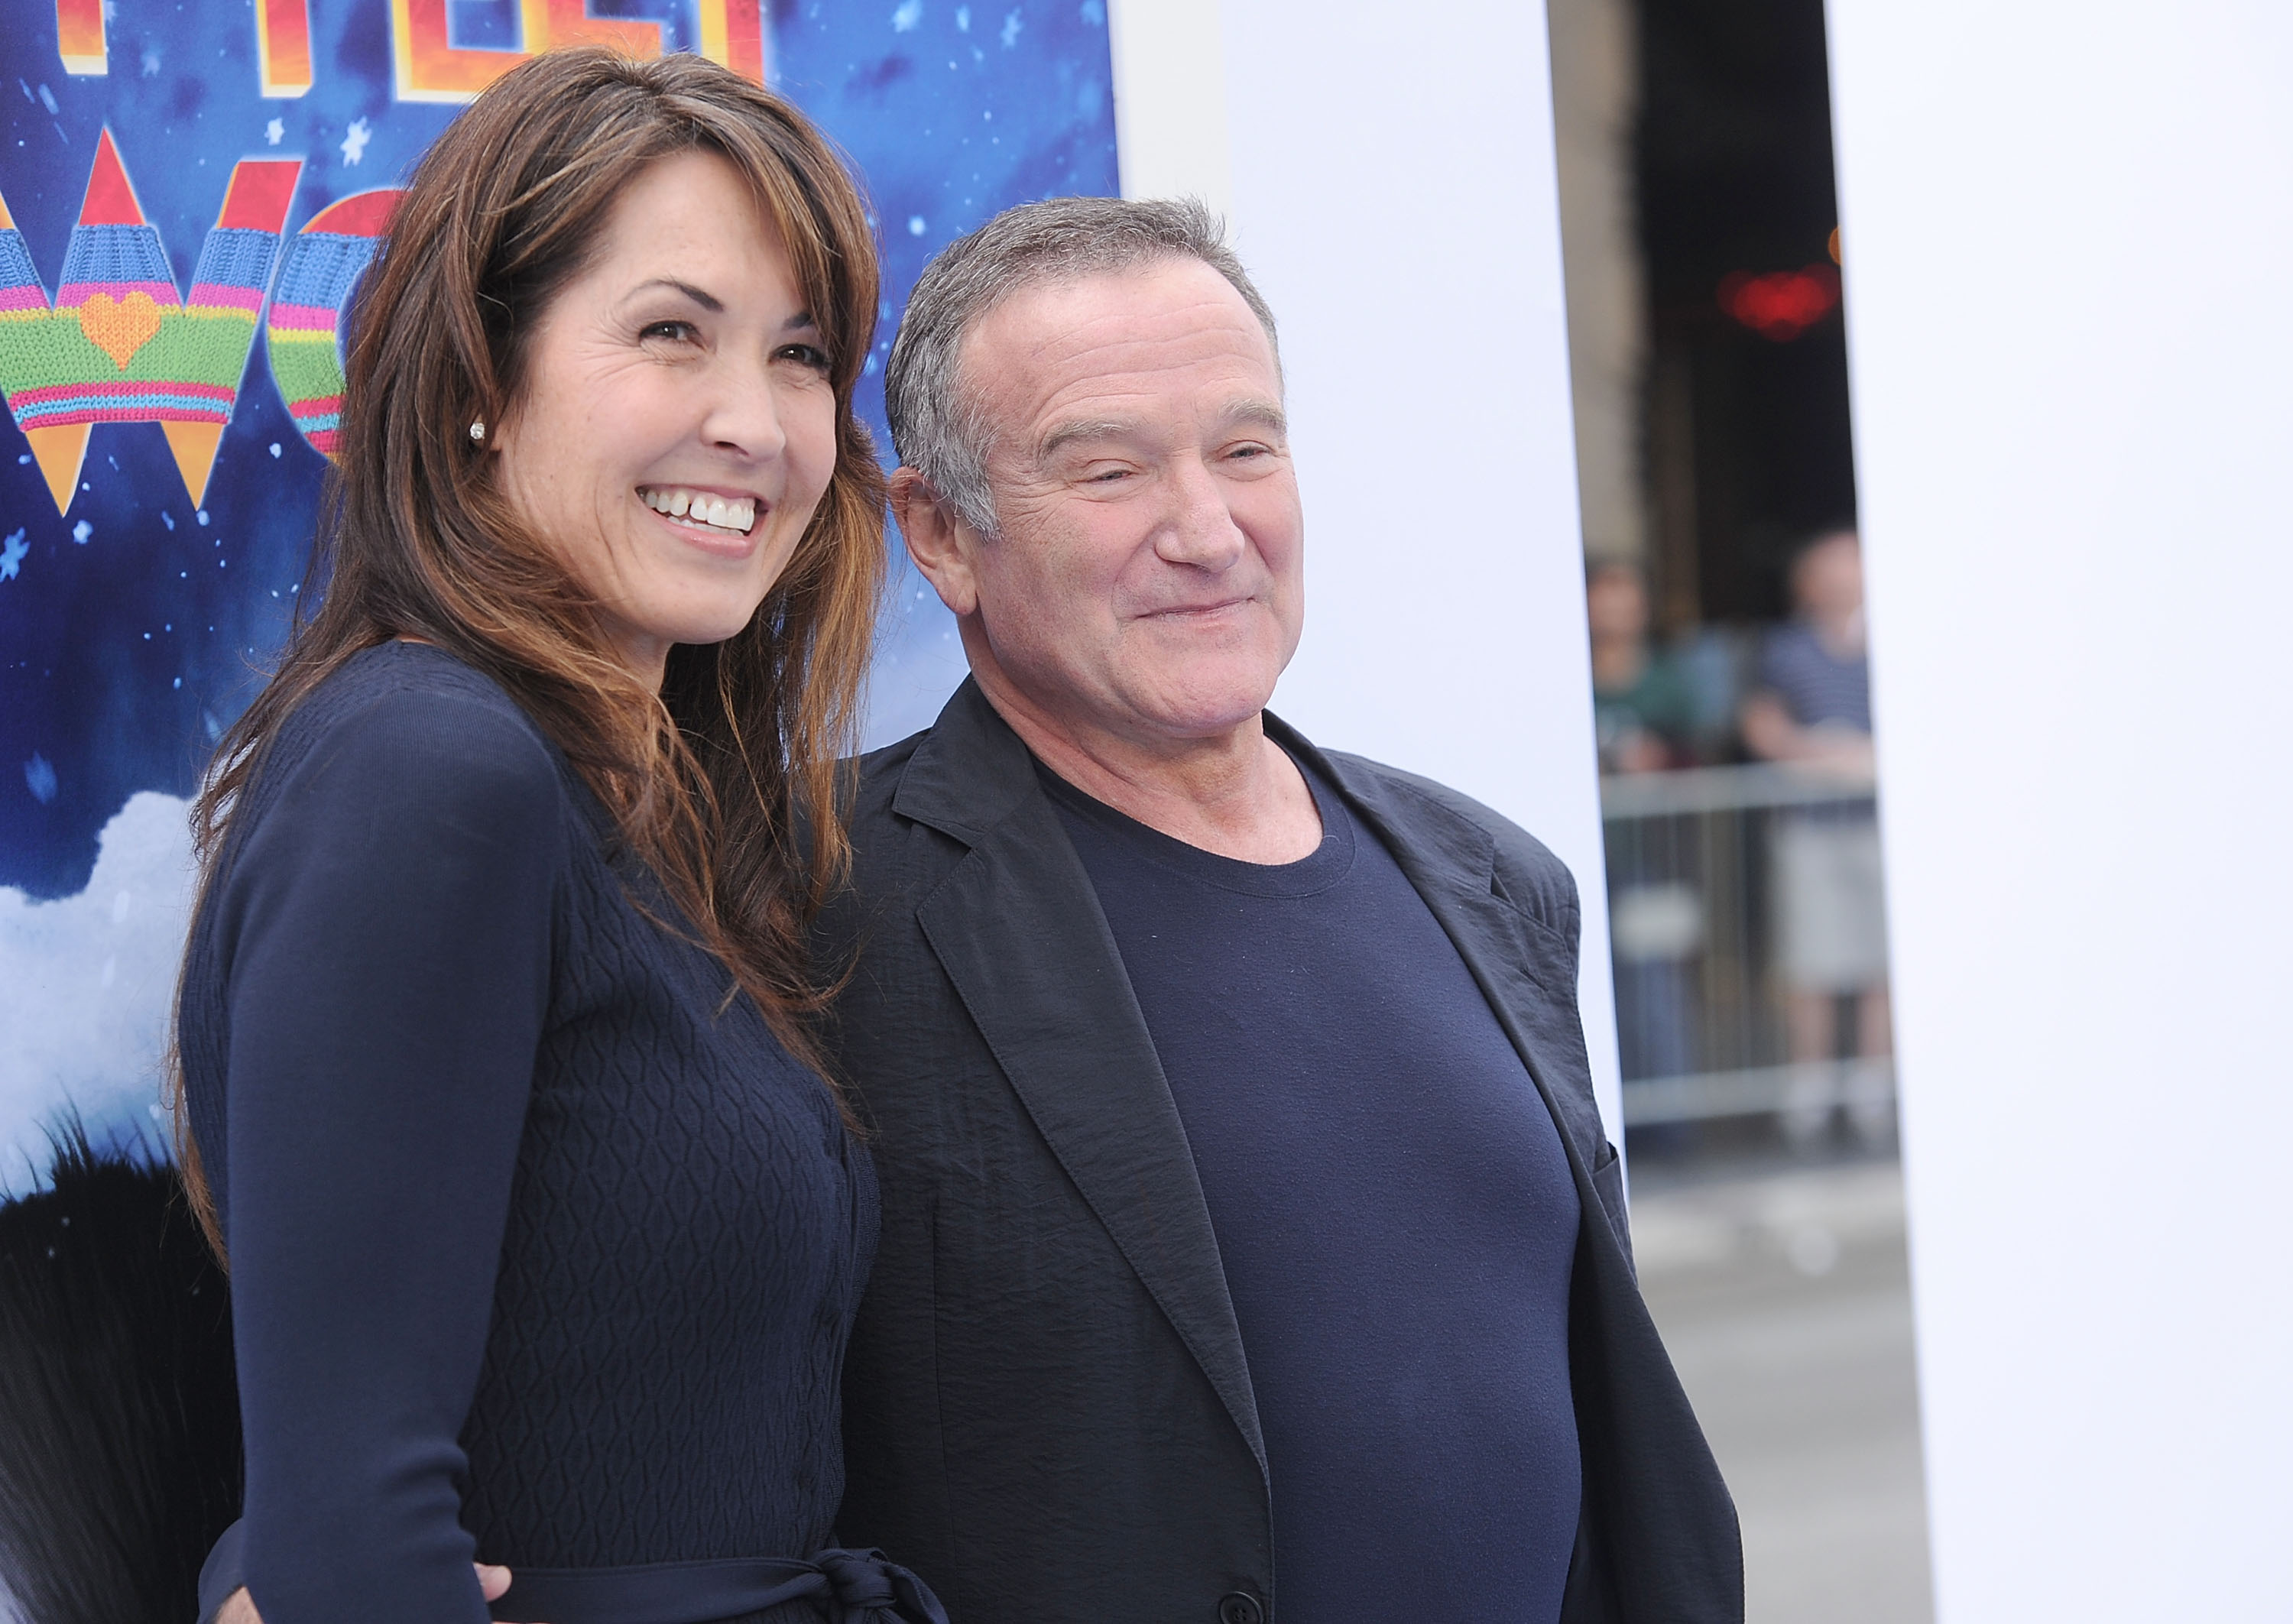 robin williams widow susan schneider williams reveals late robin williams widow susan schneider williams reveals late comedian s struggles illness in essay